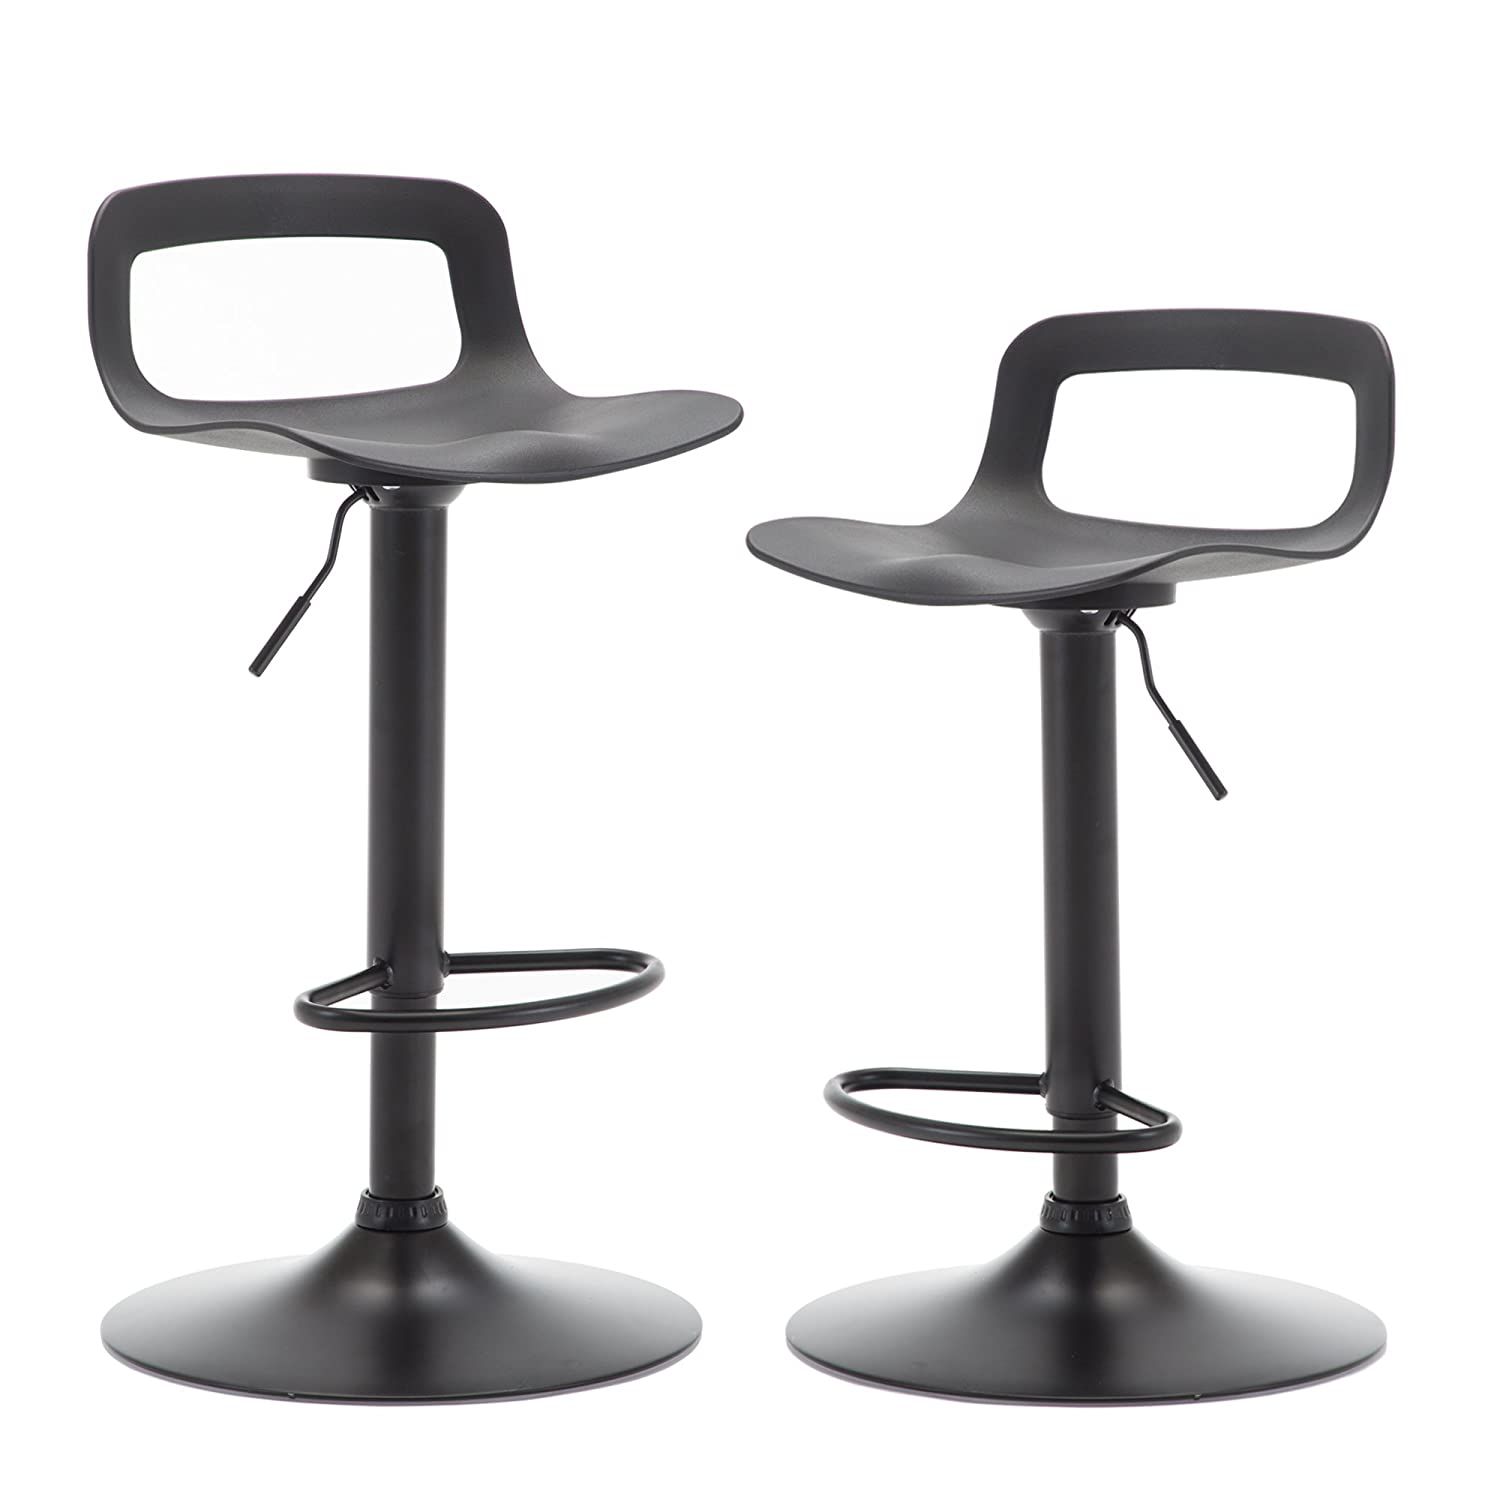 Super 35 Best Cheap Bar Stools You Can Buy For Under 80 In 2019 Uwap Interior Chair Design Uwaporg